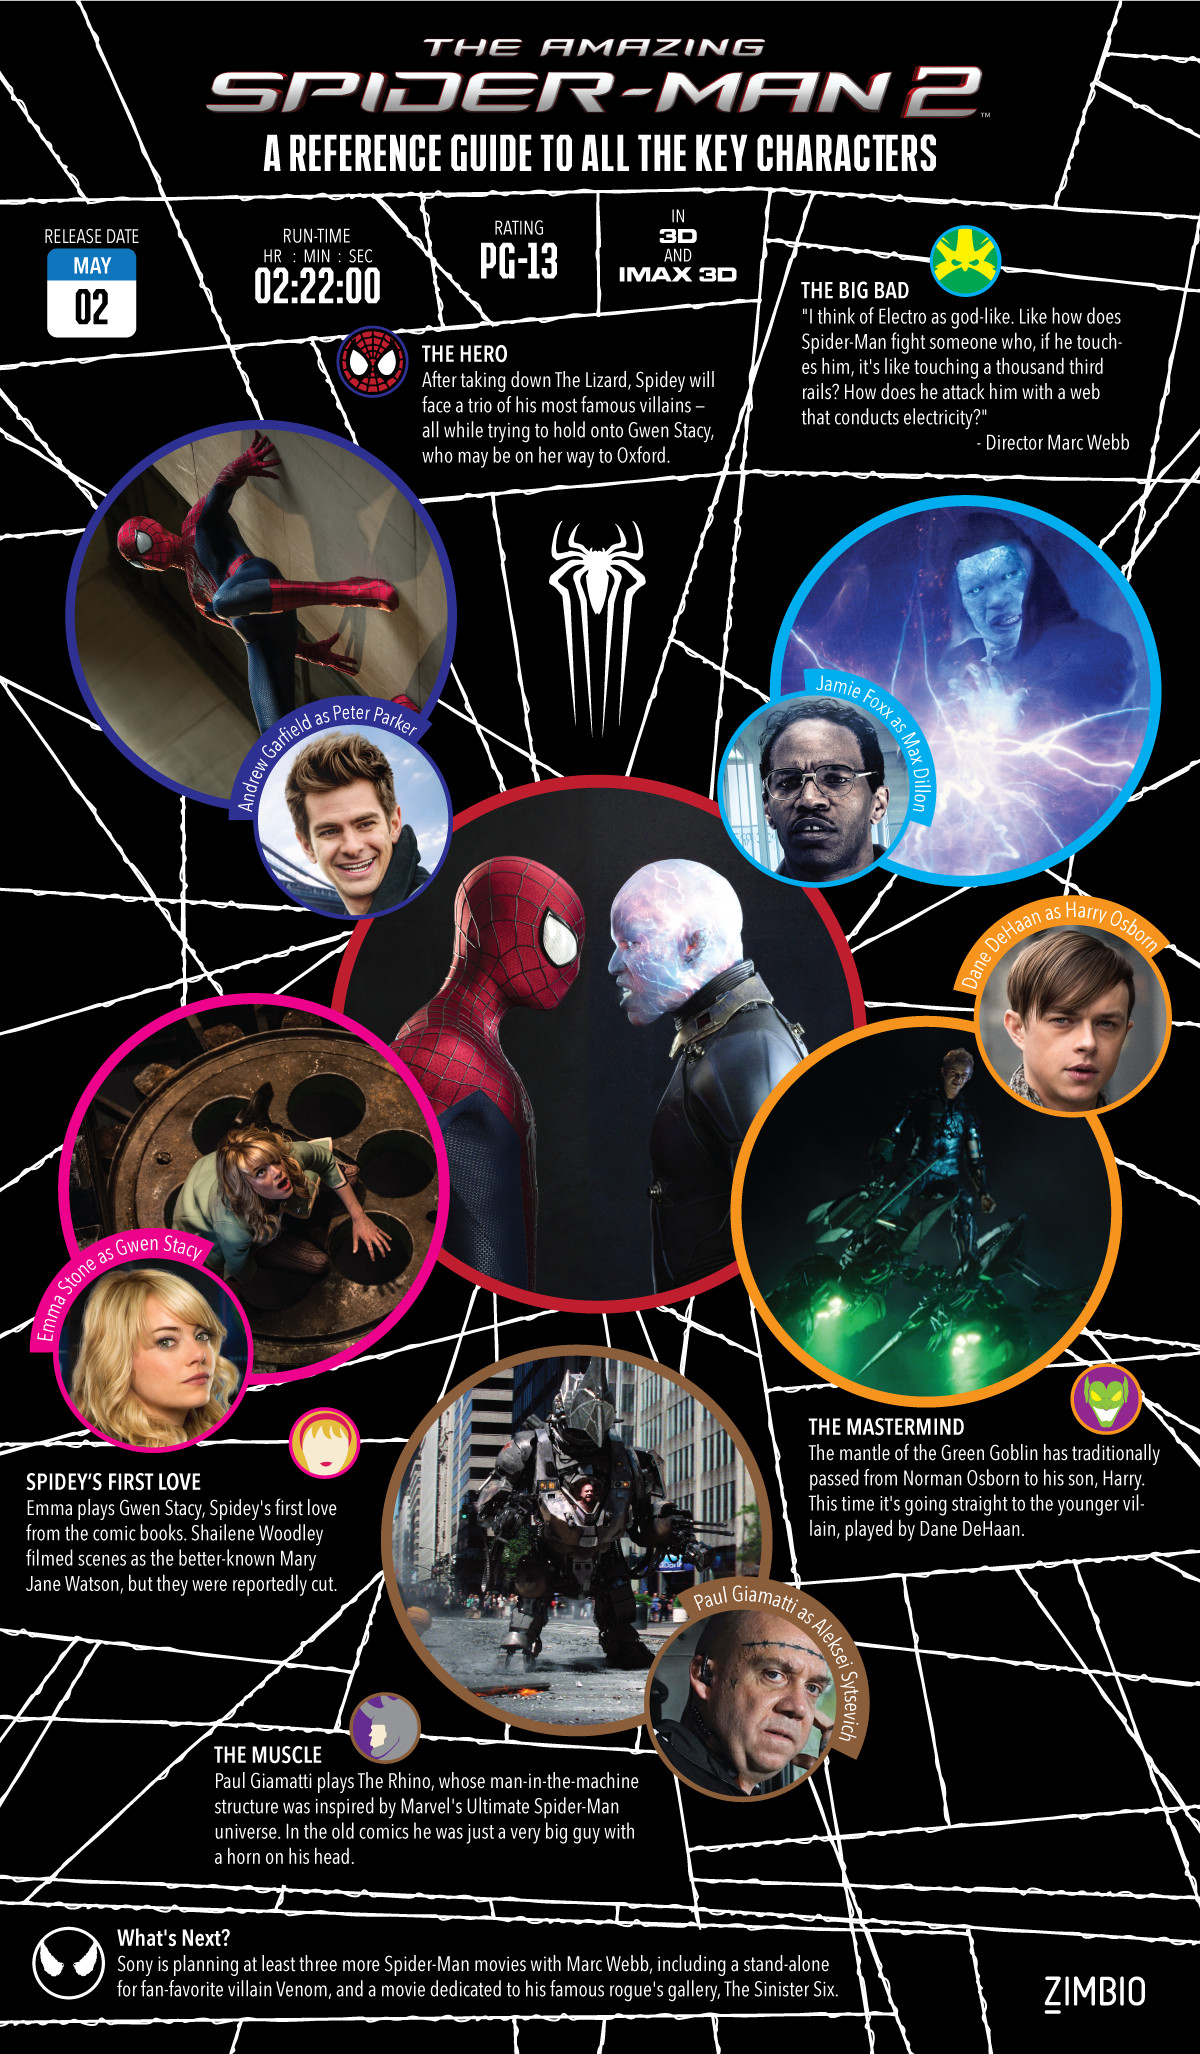 'The Amazing Spider-Man 2': A Quick-Reference Guide to All the Key Characters